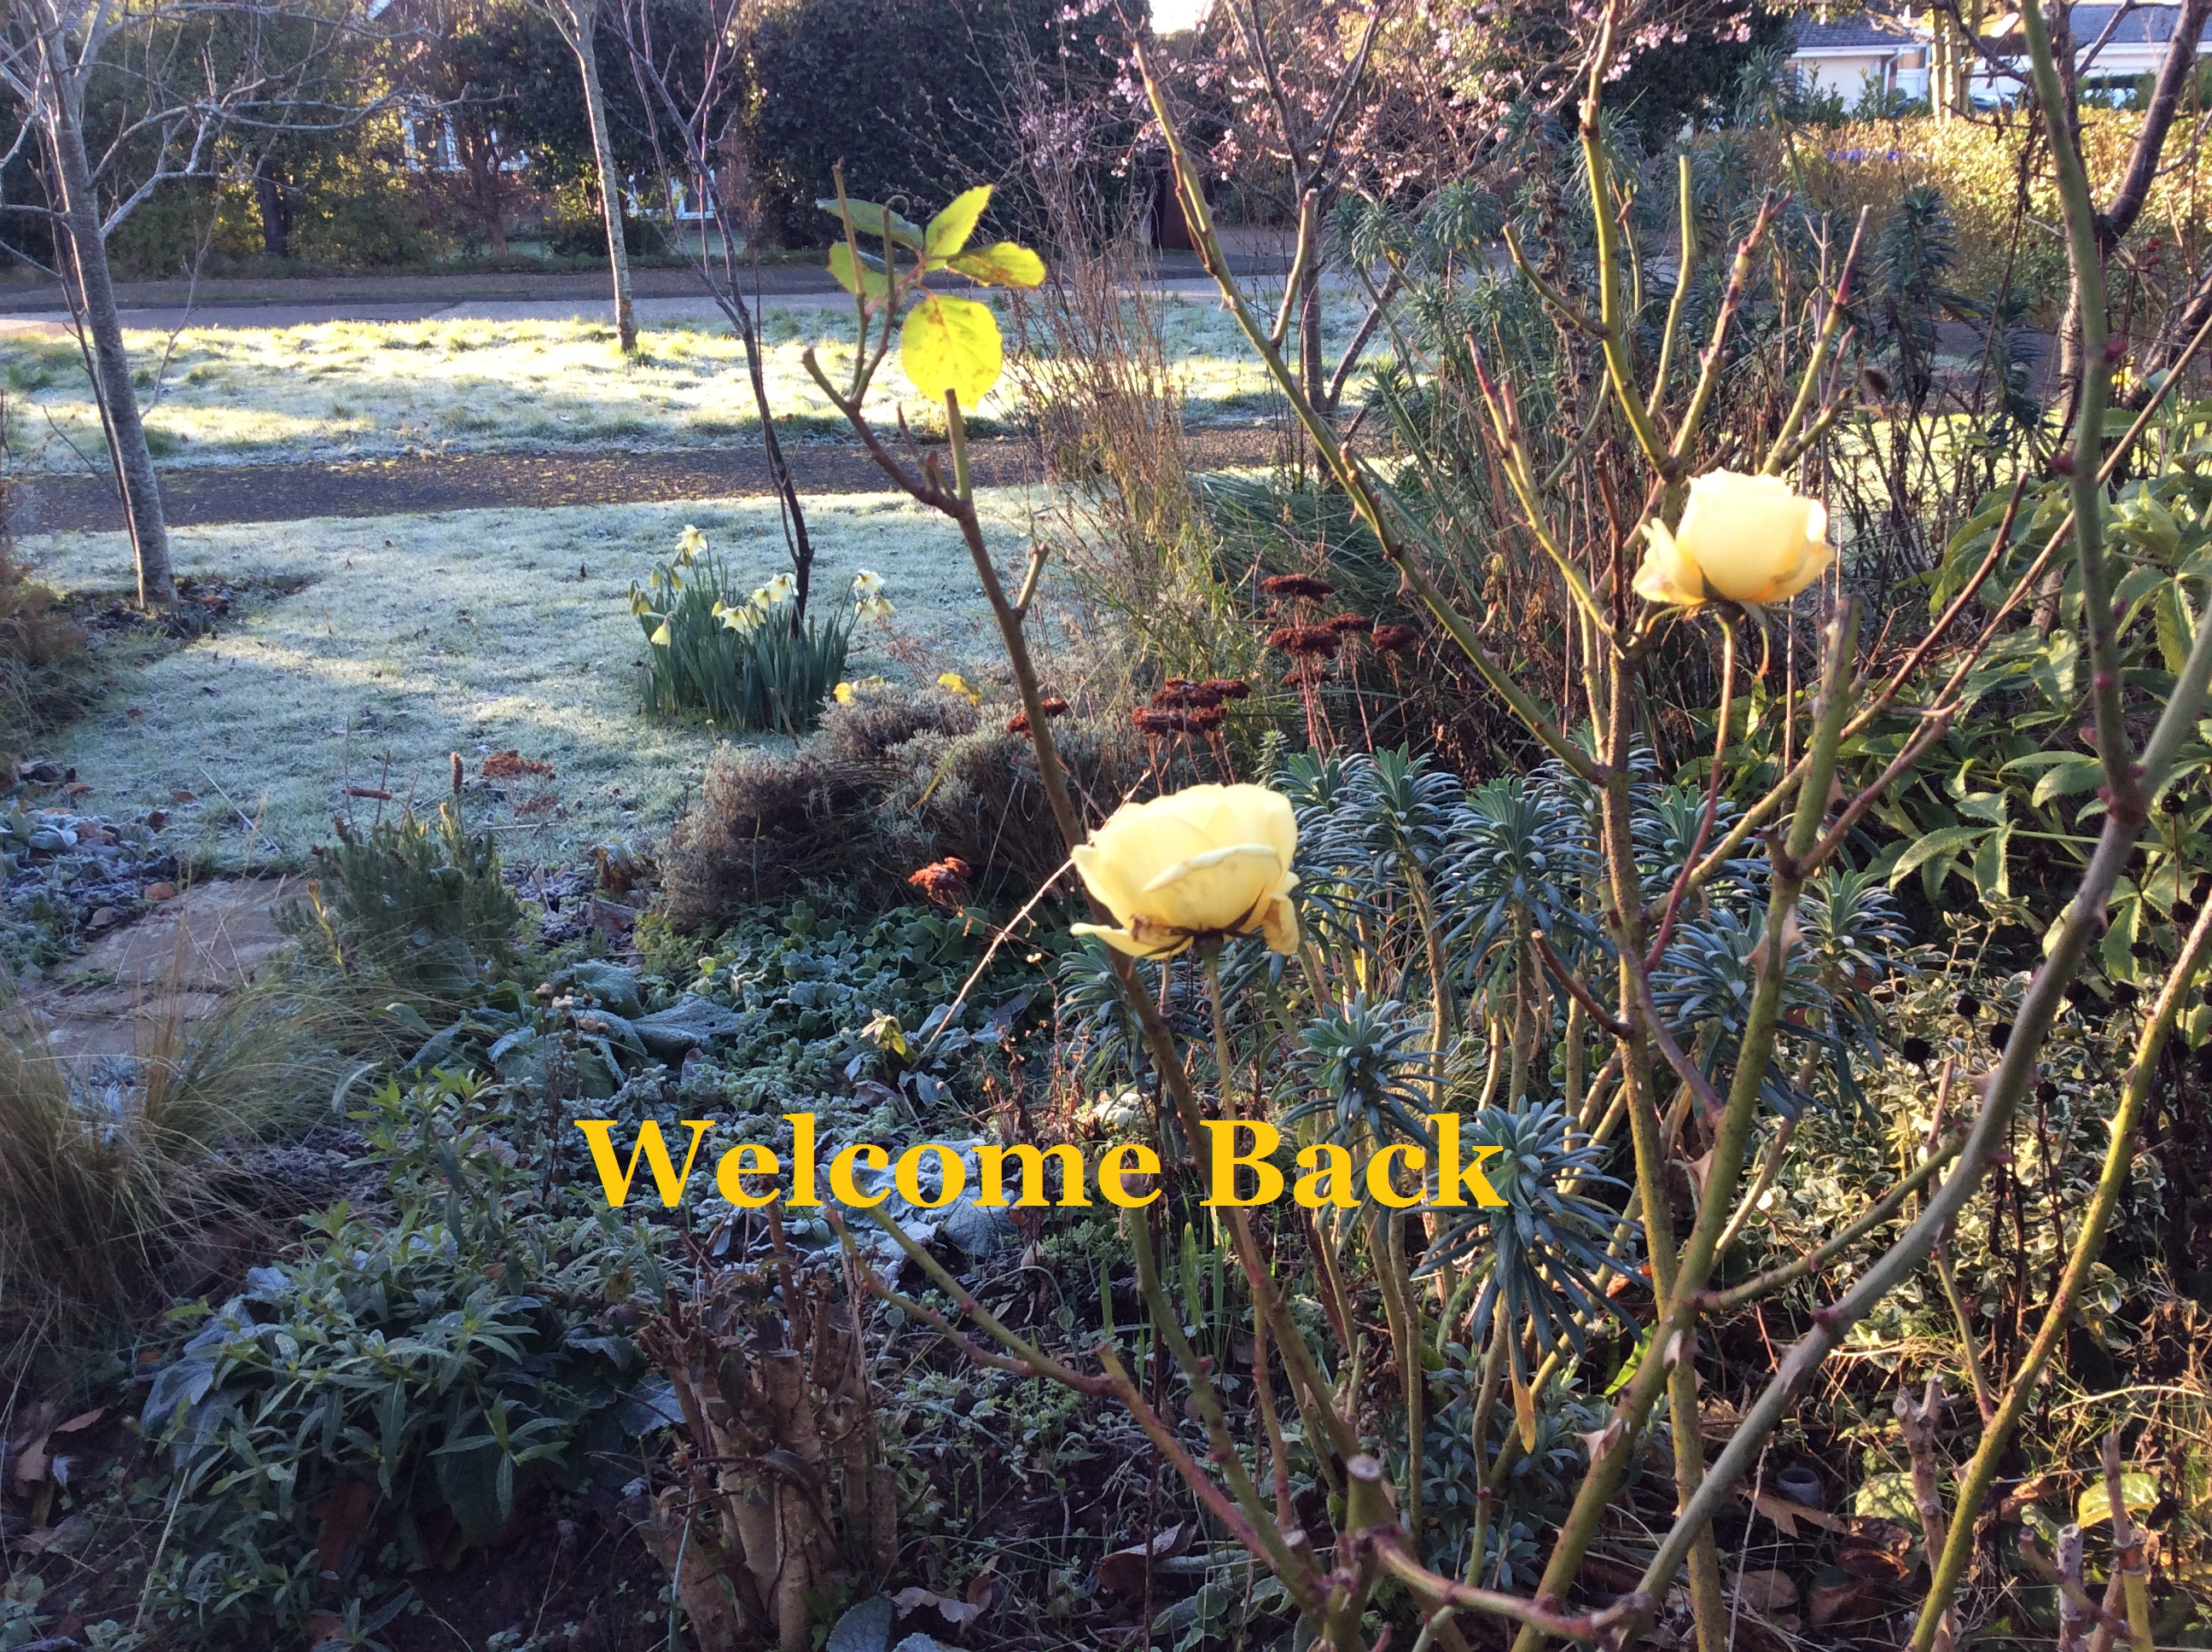 Welcome back- January garden photo